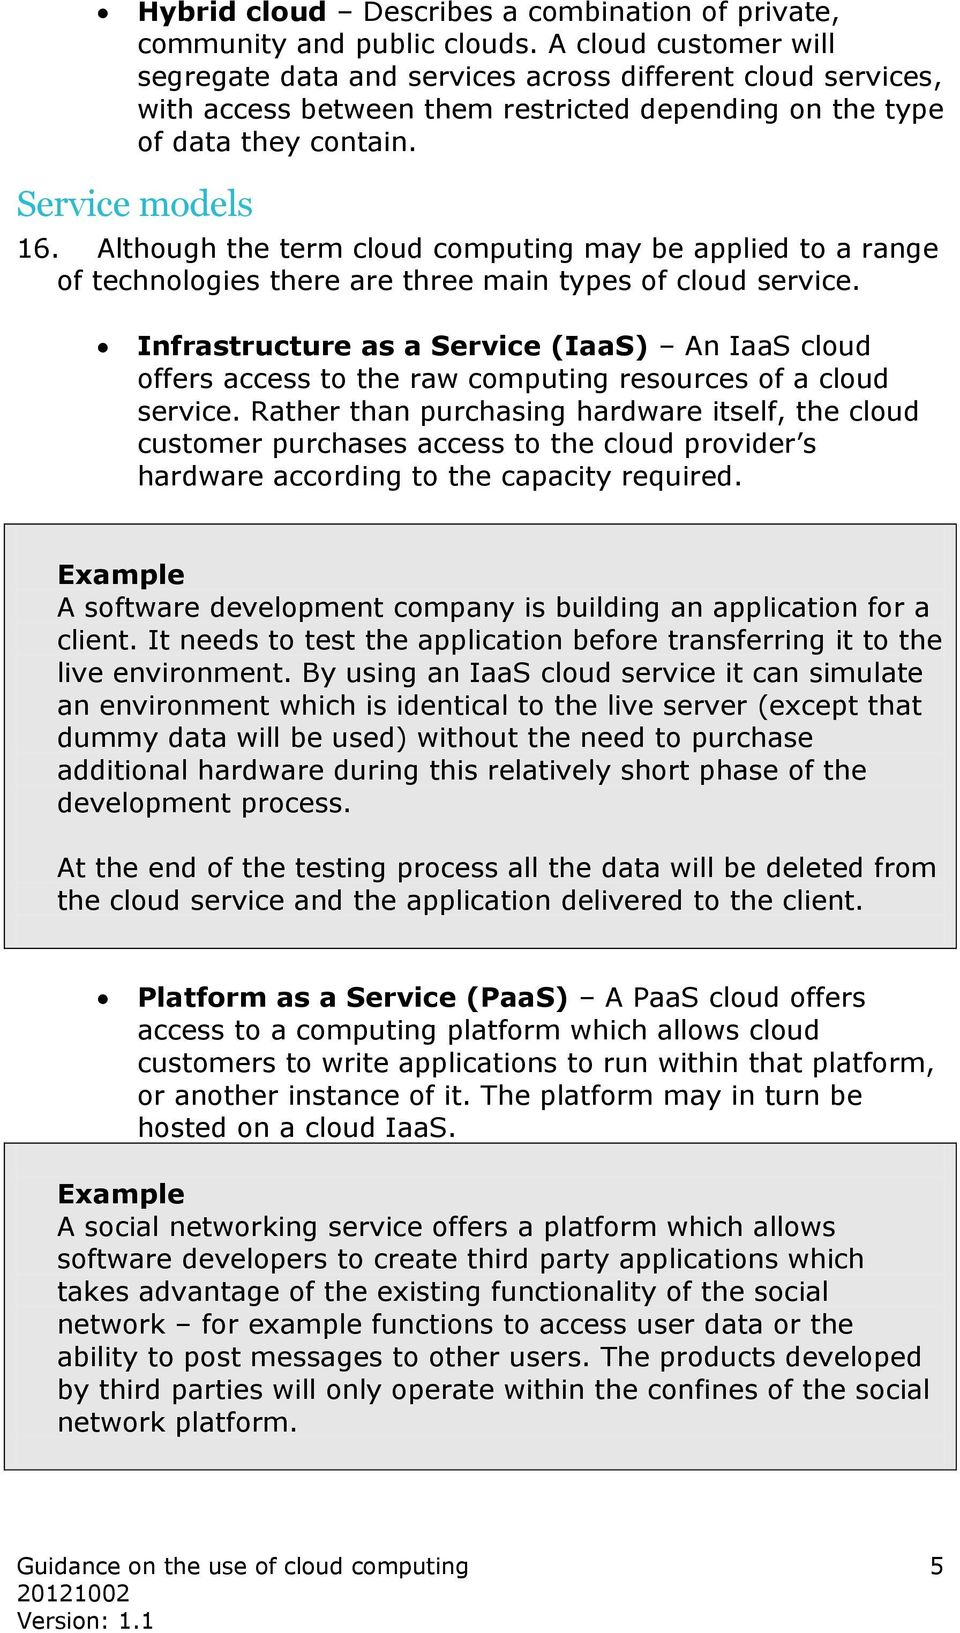 Although the term cloud computing may be applied to a range of technologies there are three main types of cloud service.